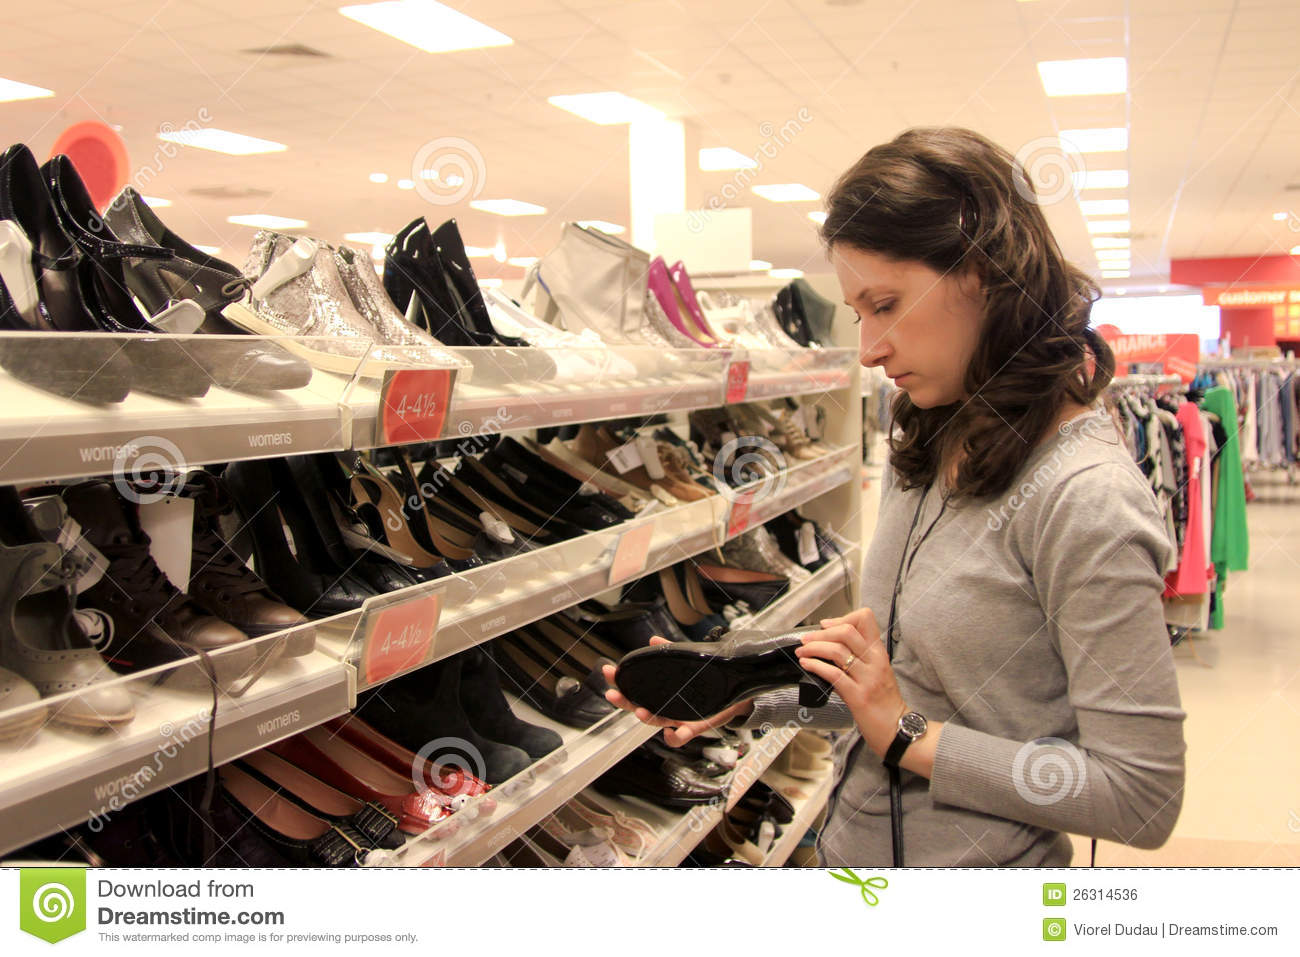 Wonderful Payless Shoes PromotionOnline Shopping For Promotional Payless Shoes